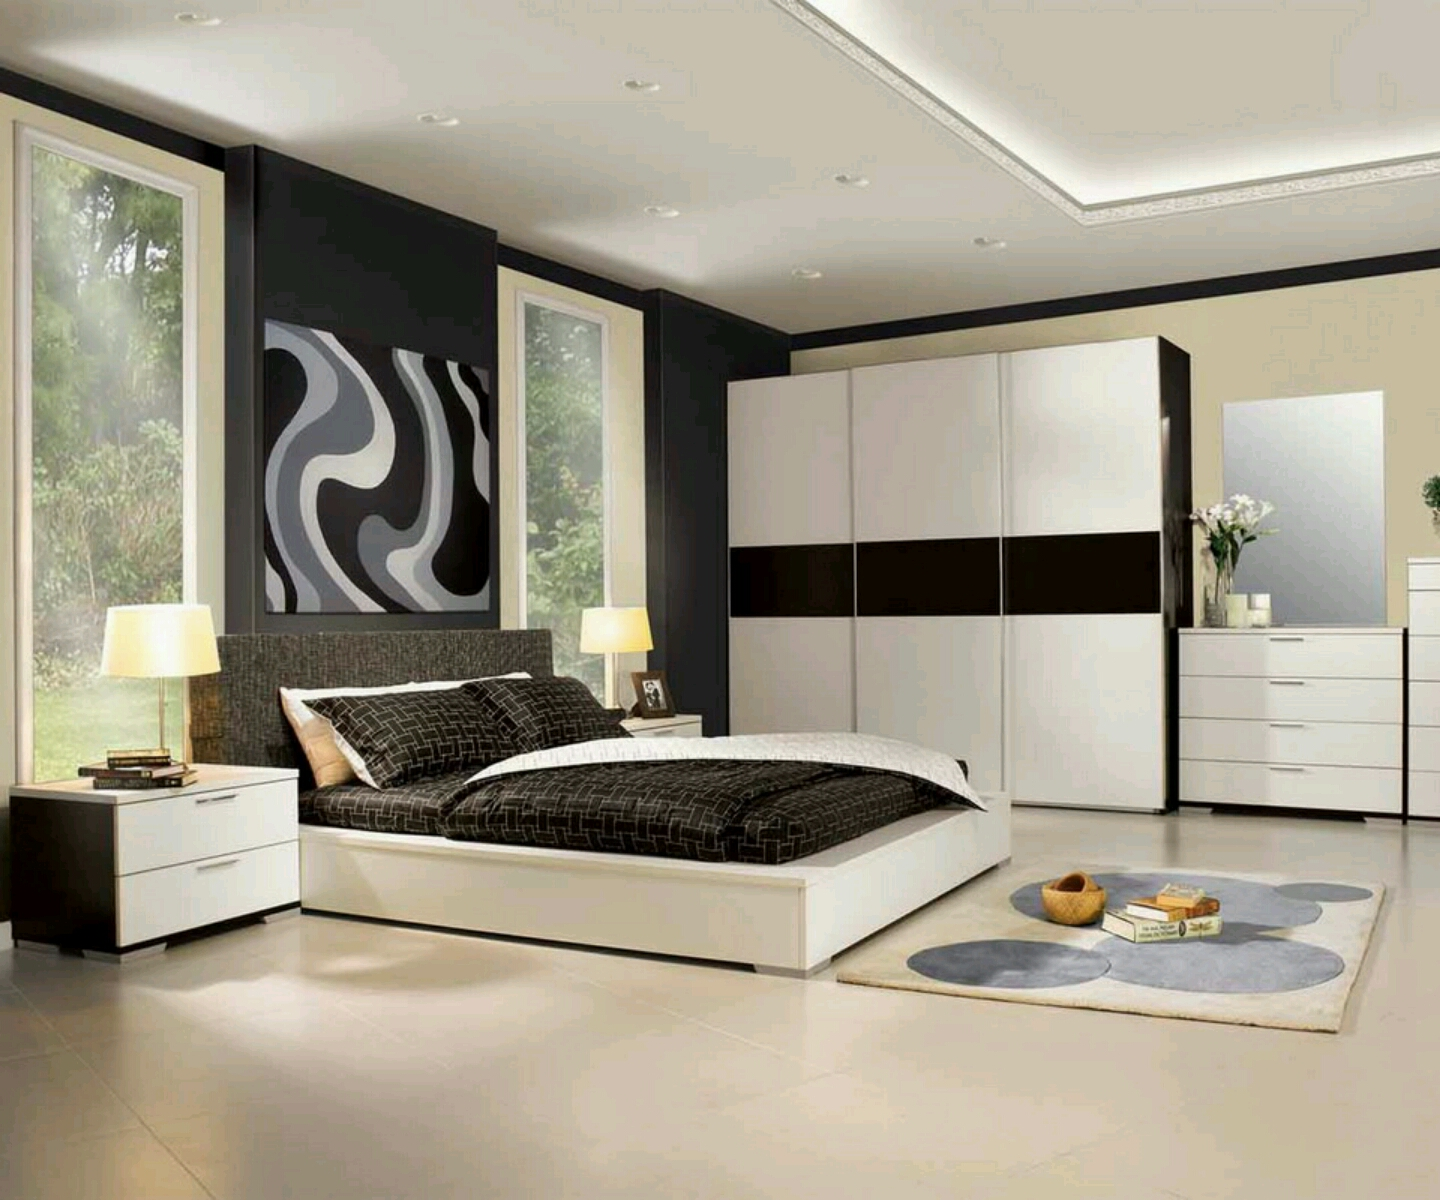 Luxury Bedroom Design Ideas: Best Design Home: December 2012